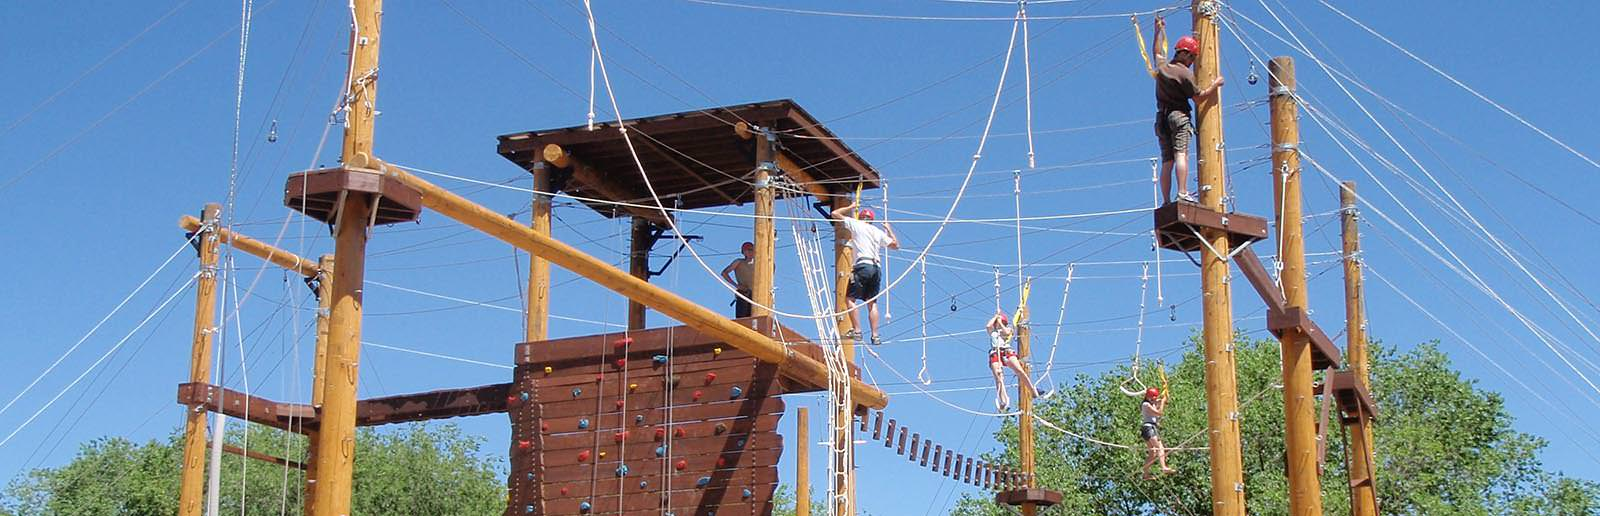 outdoor team building activities ropes course